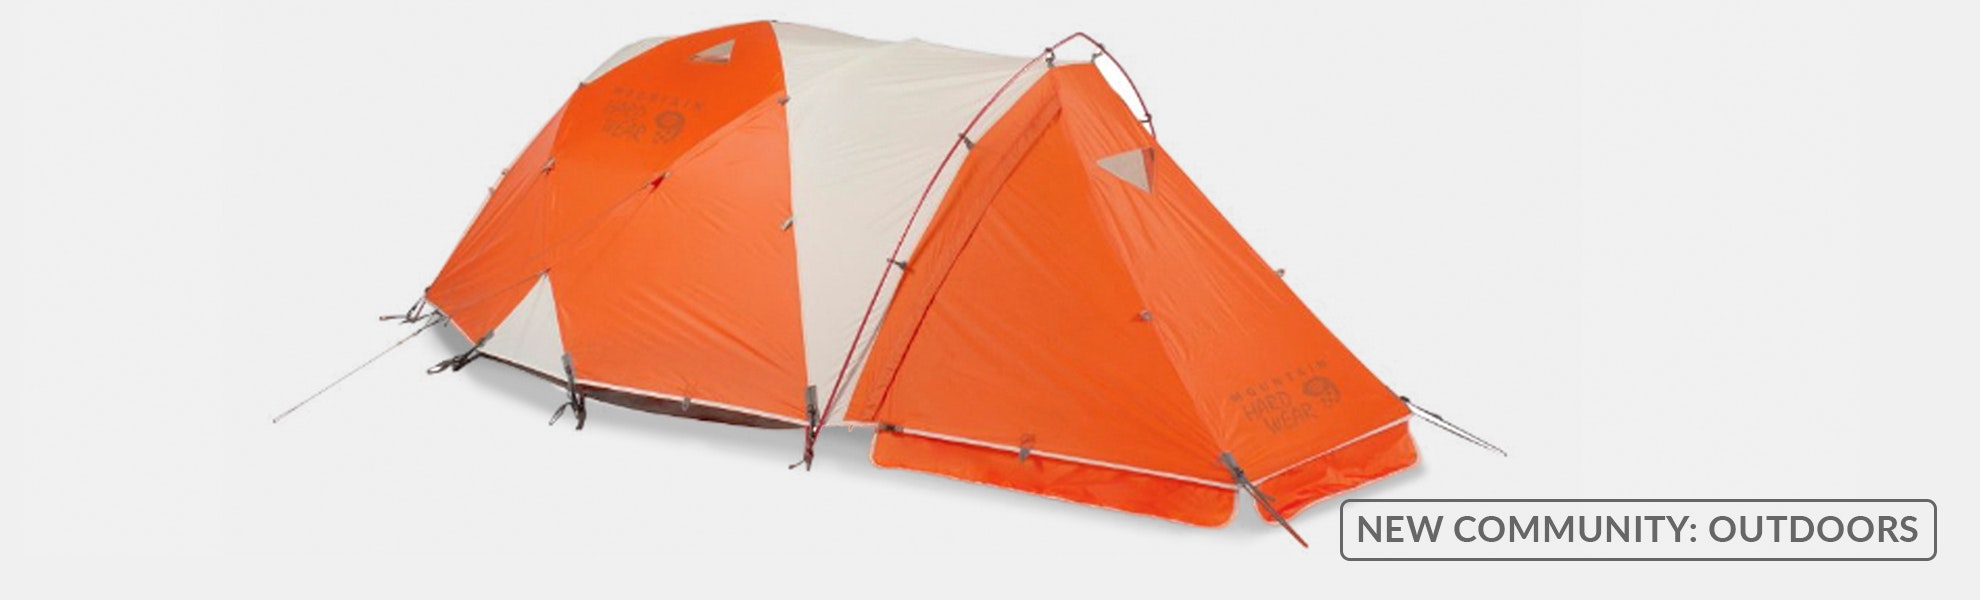 Mountain Hardwear Trango 4-Season Tents